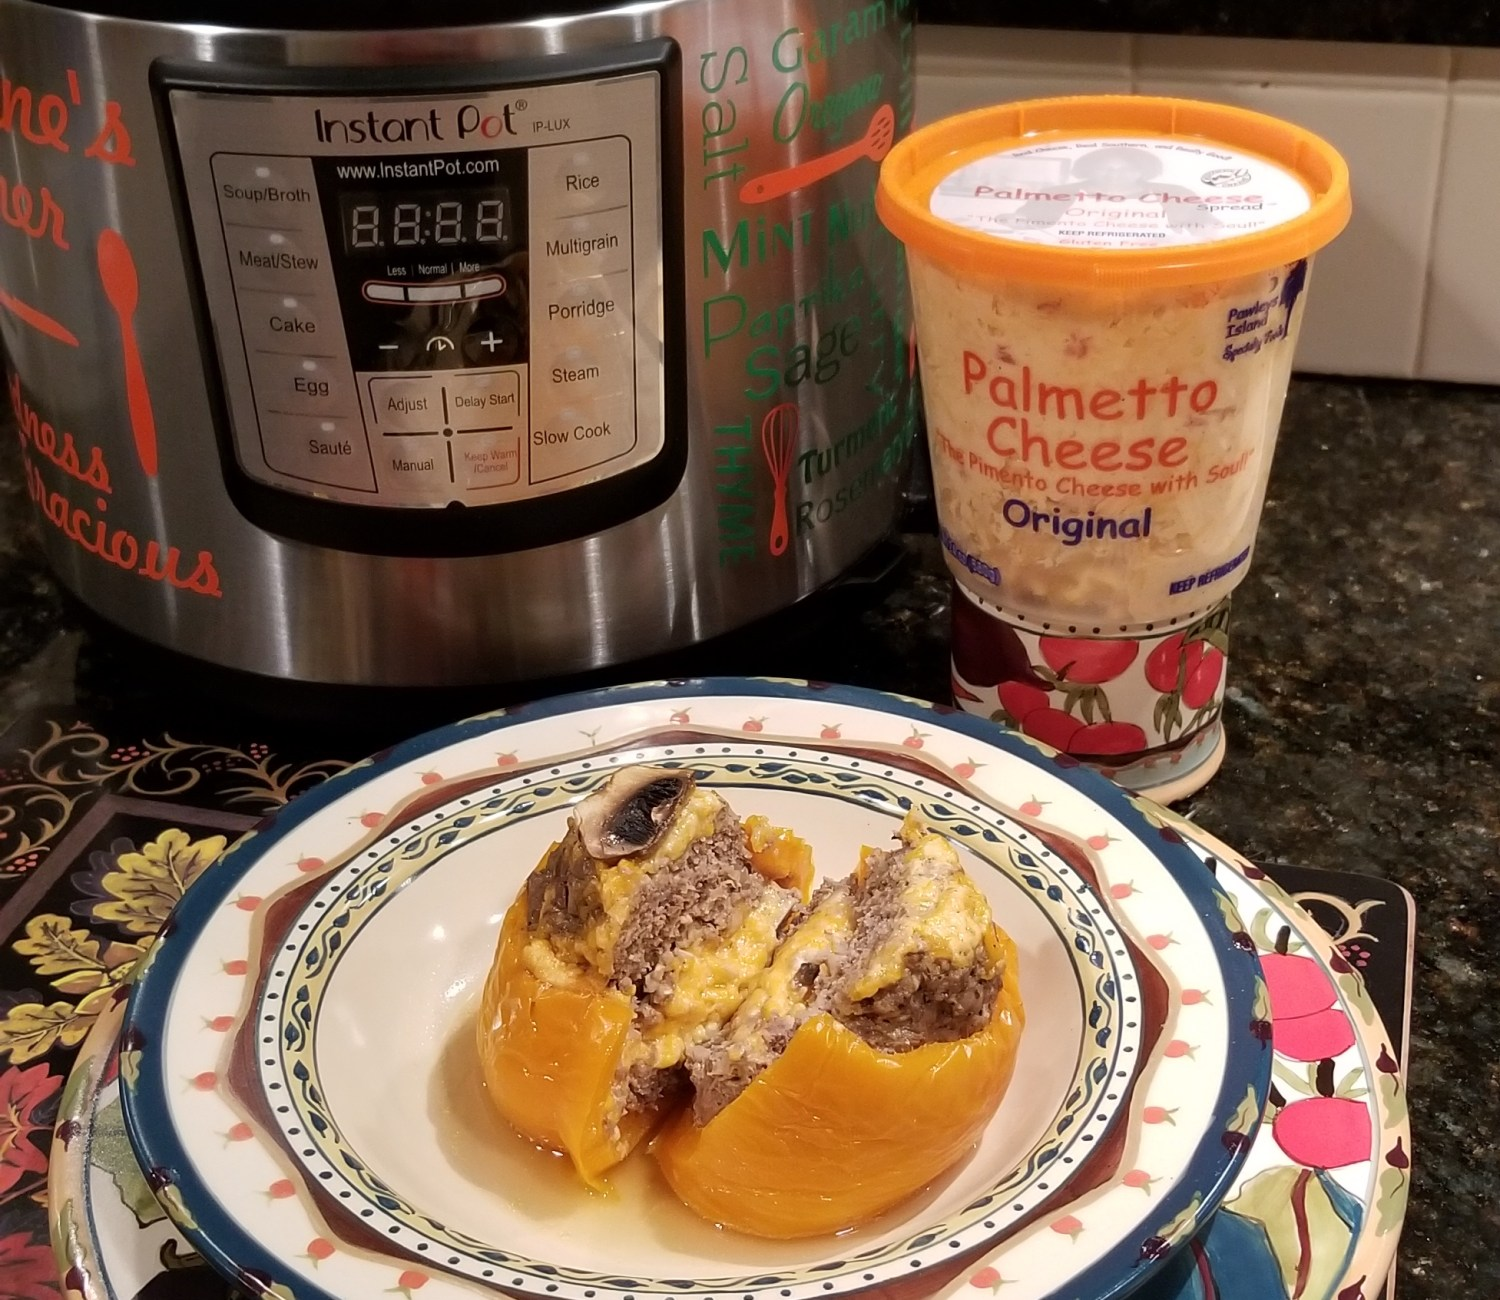 Palmetto Cheese Stuffed Bell Peppers